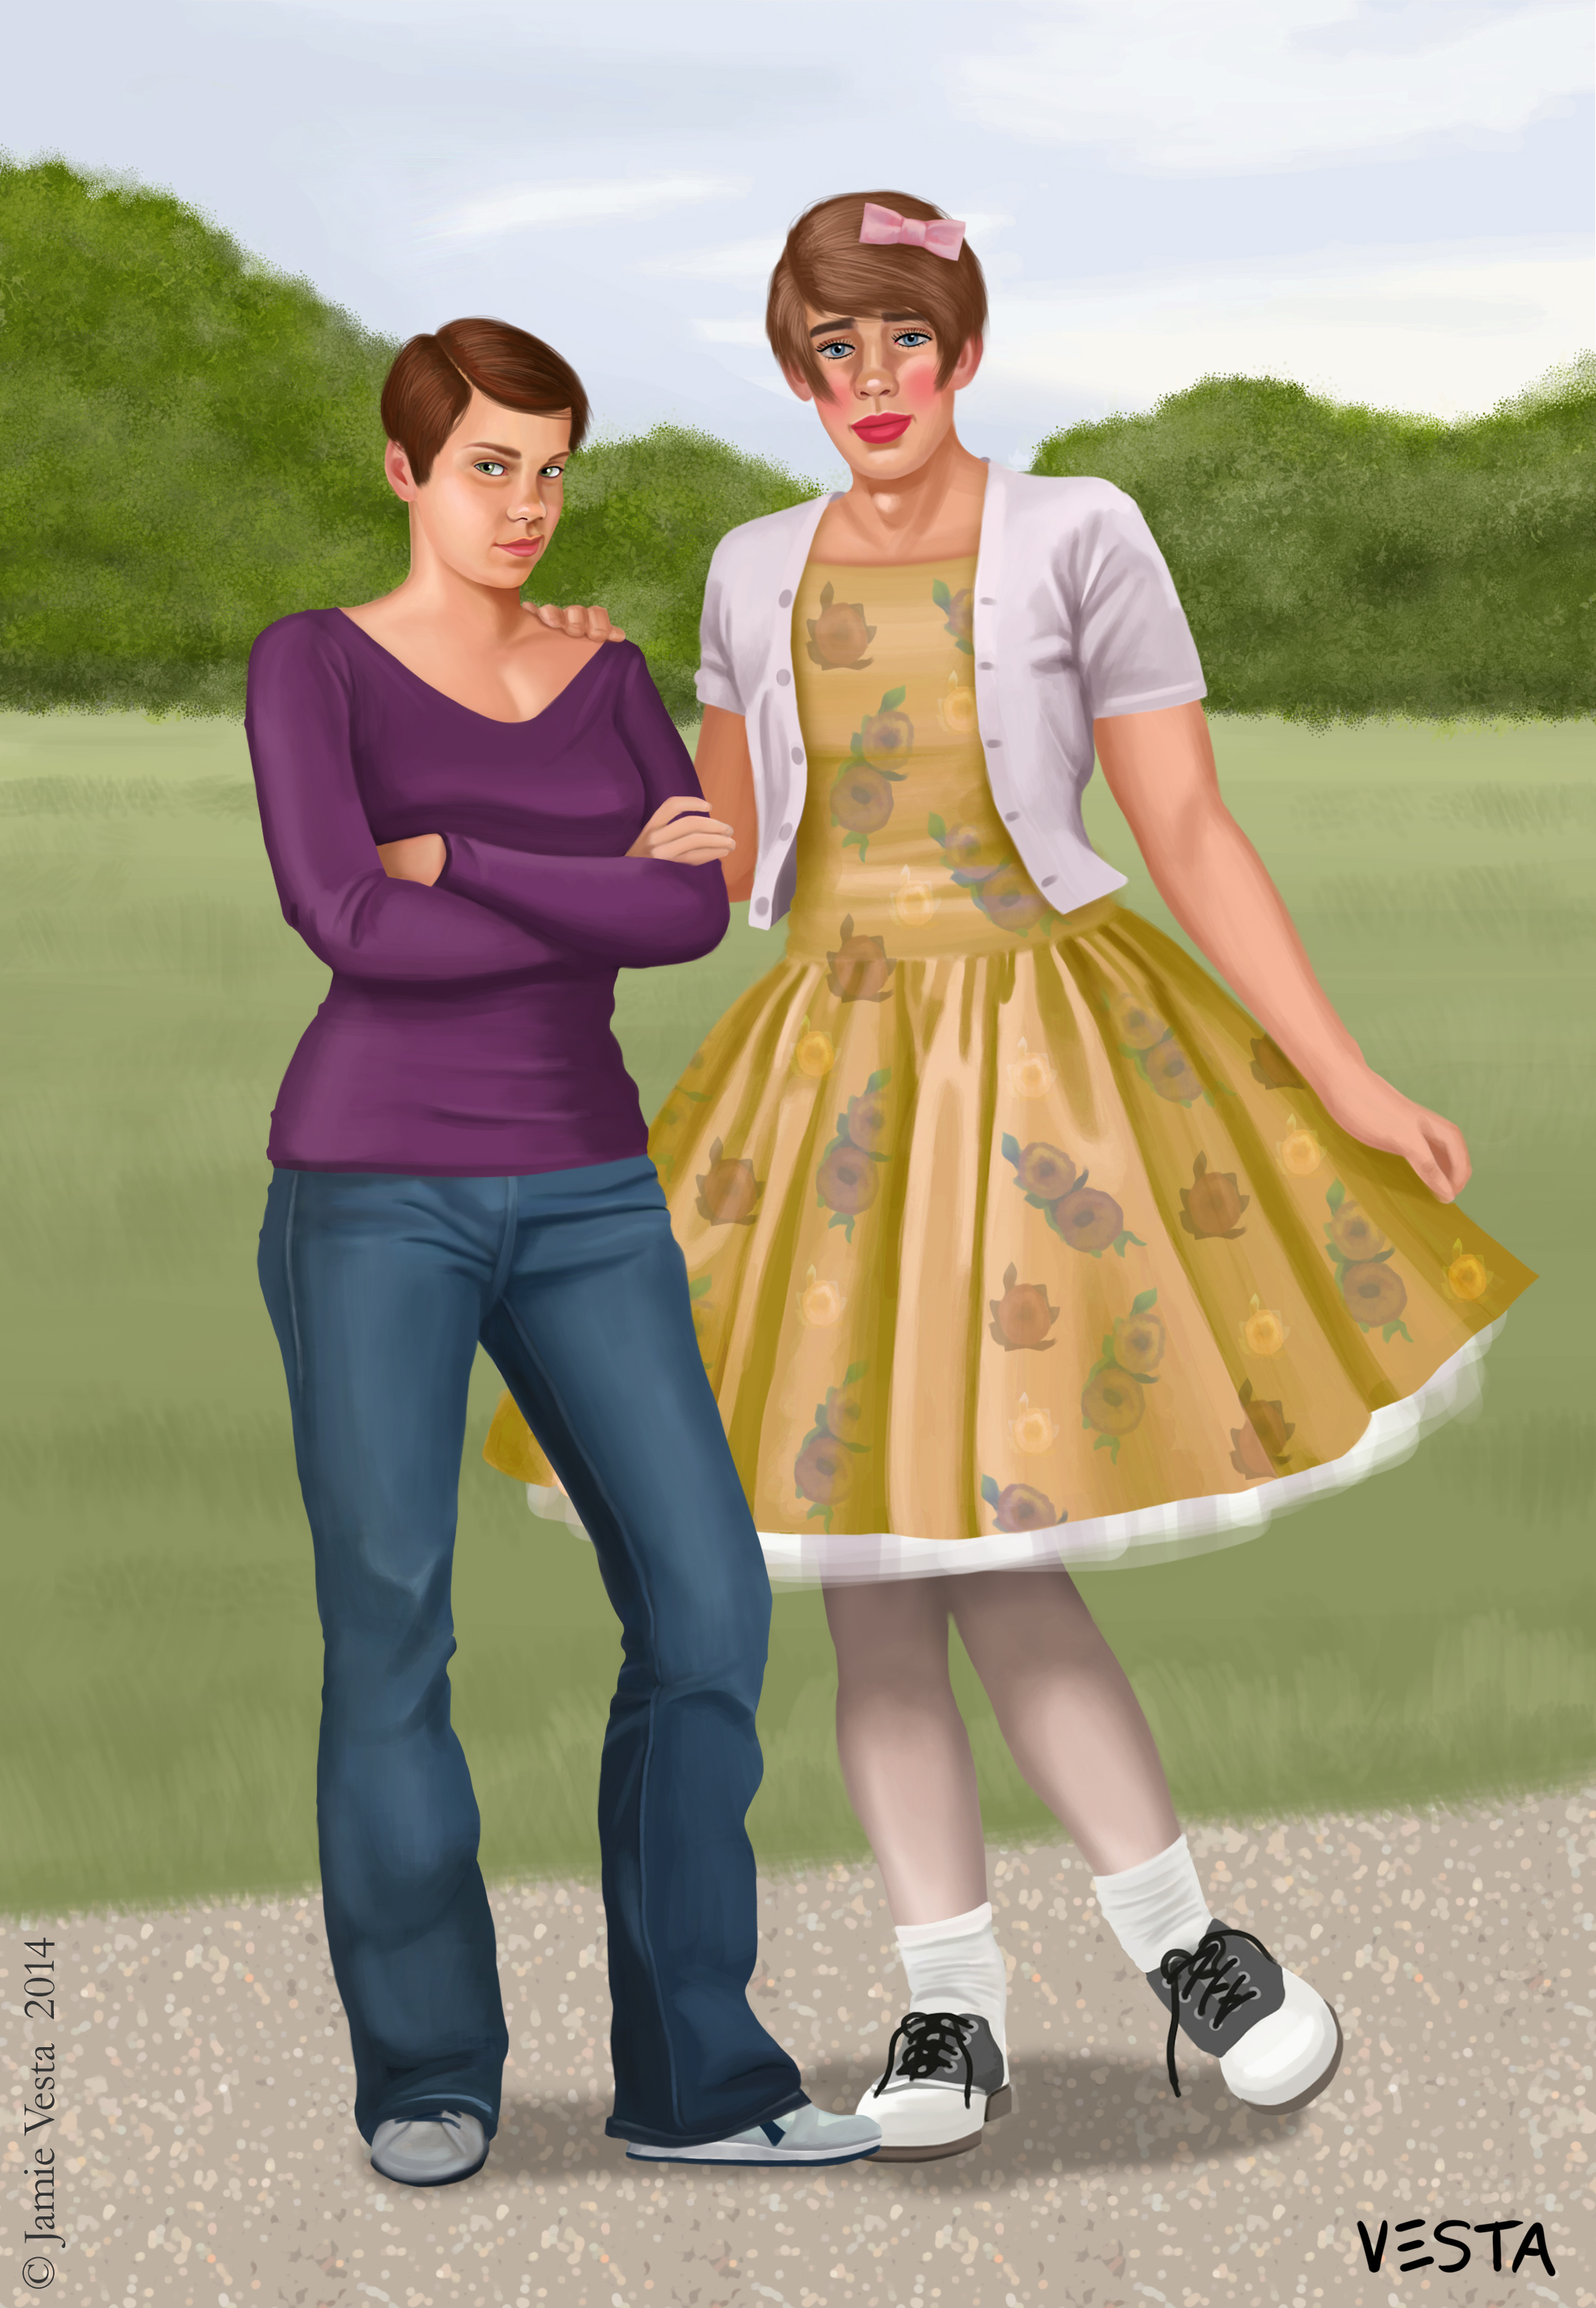 Boys In Pretty Dresses - How To Pick